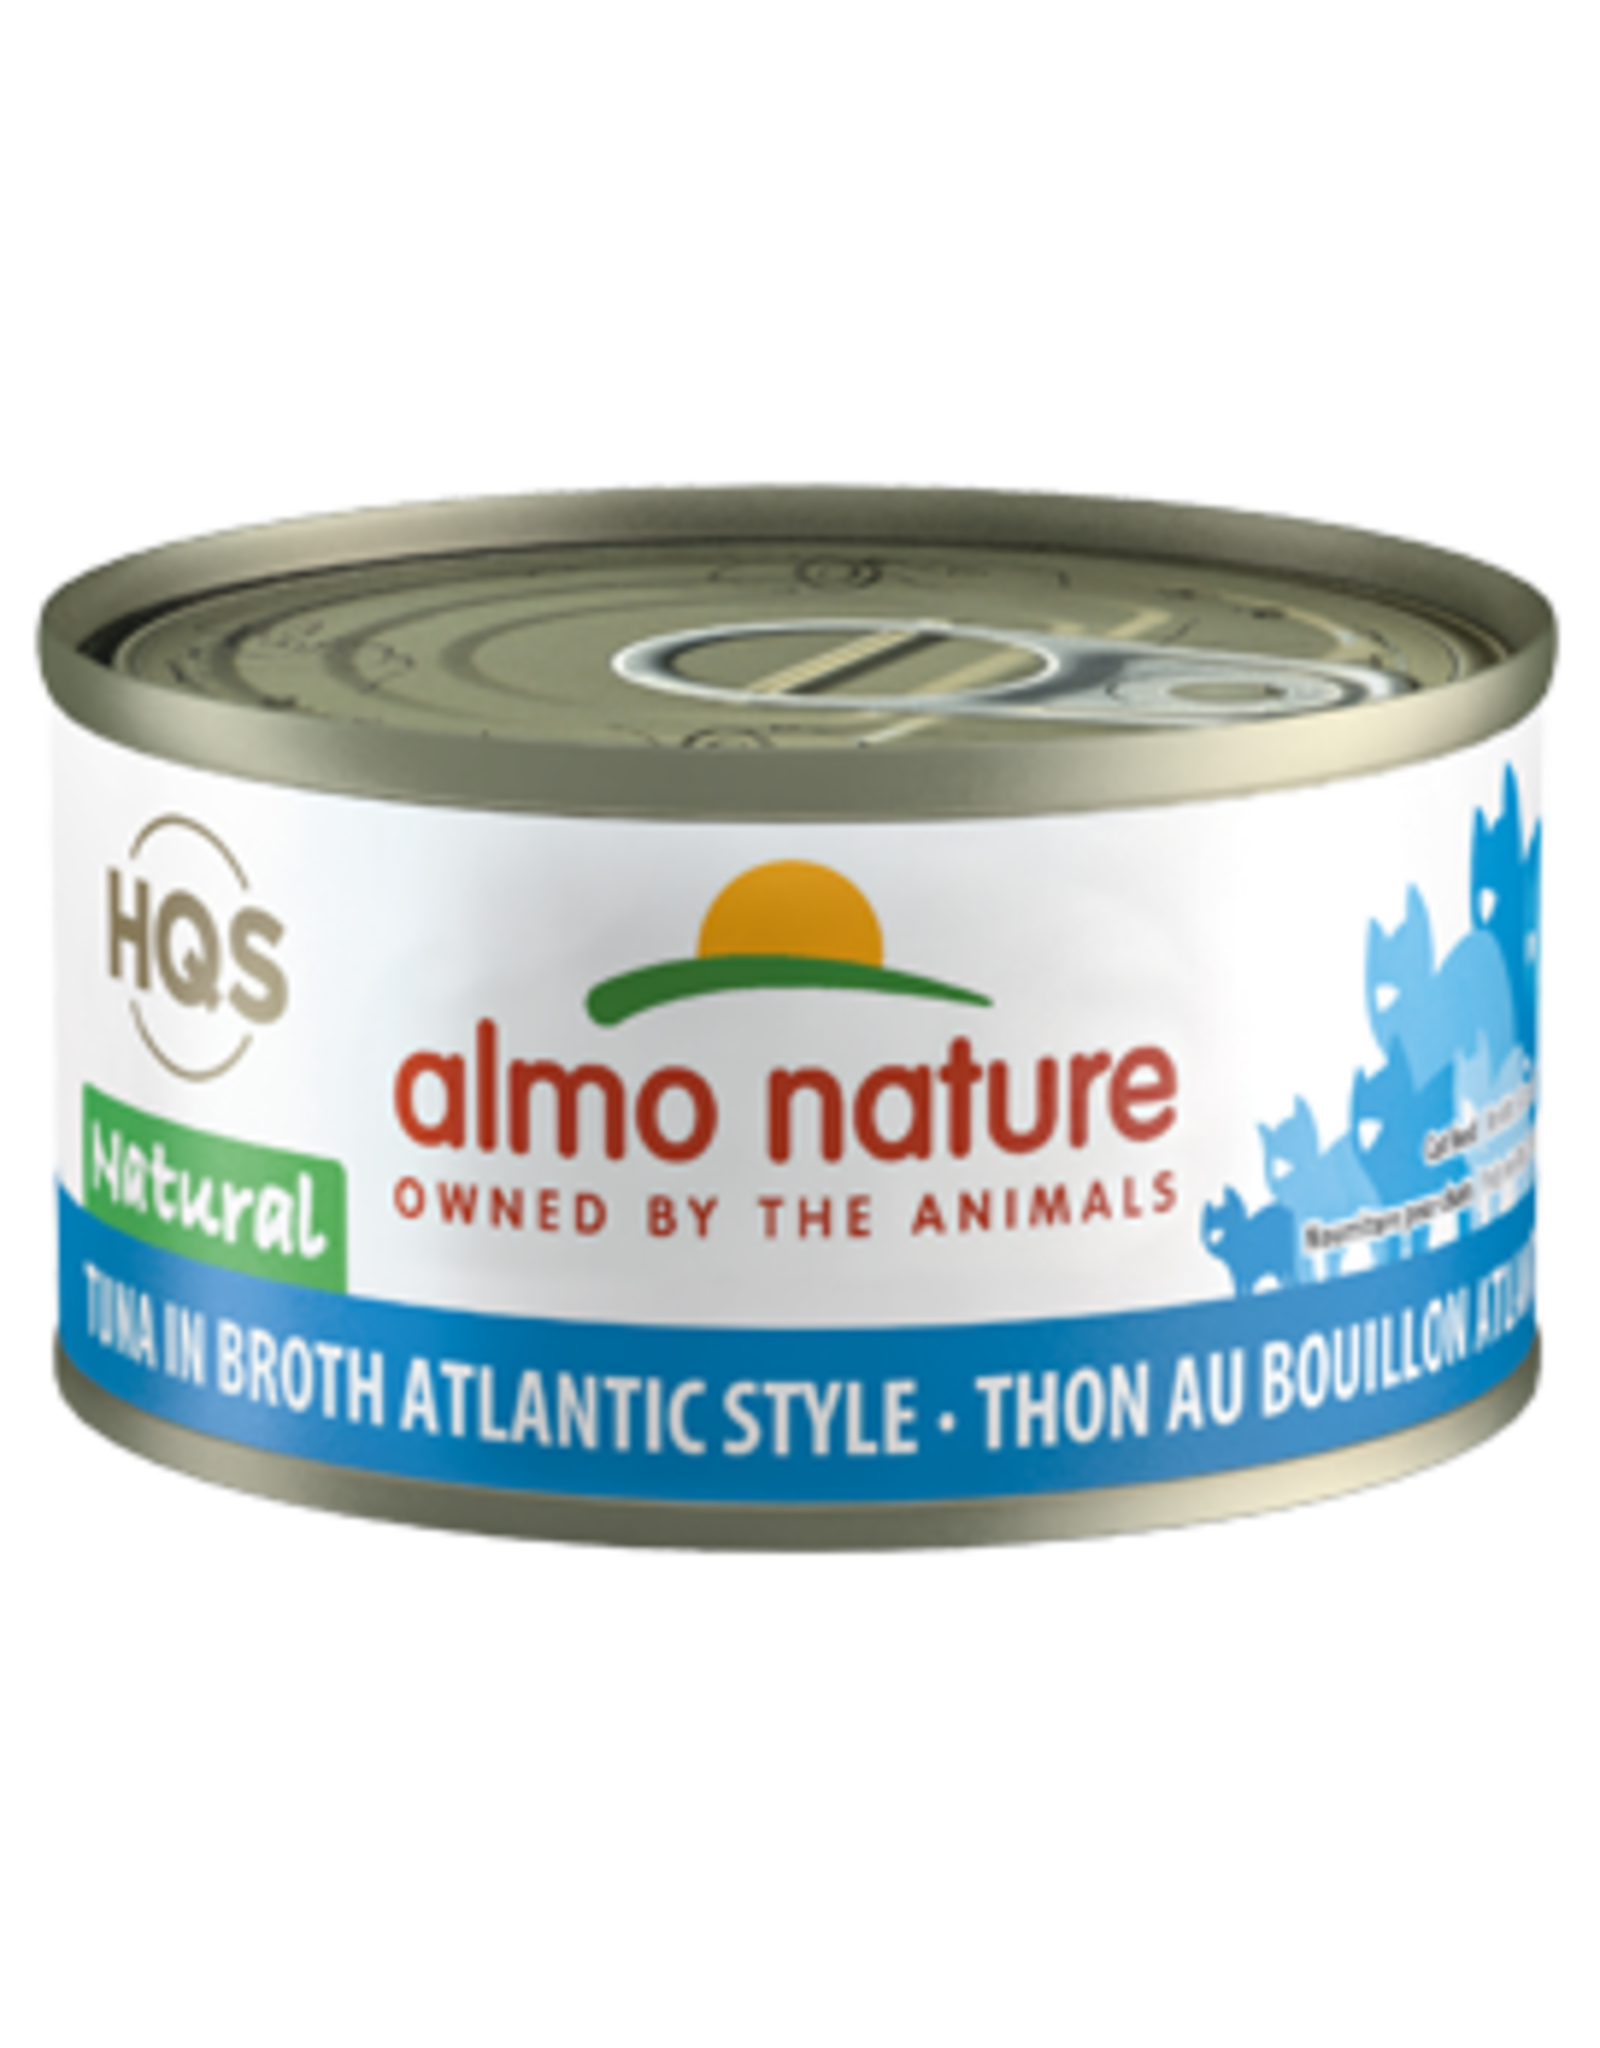 ALMO AlmoNature CAT Natural Tuna in Broth Atlantic Style 70g